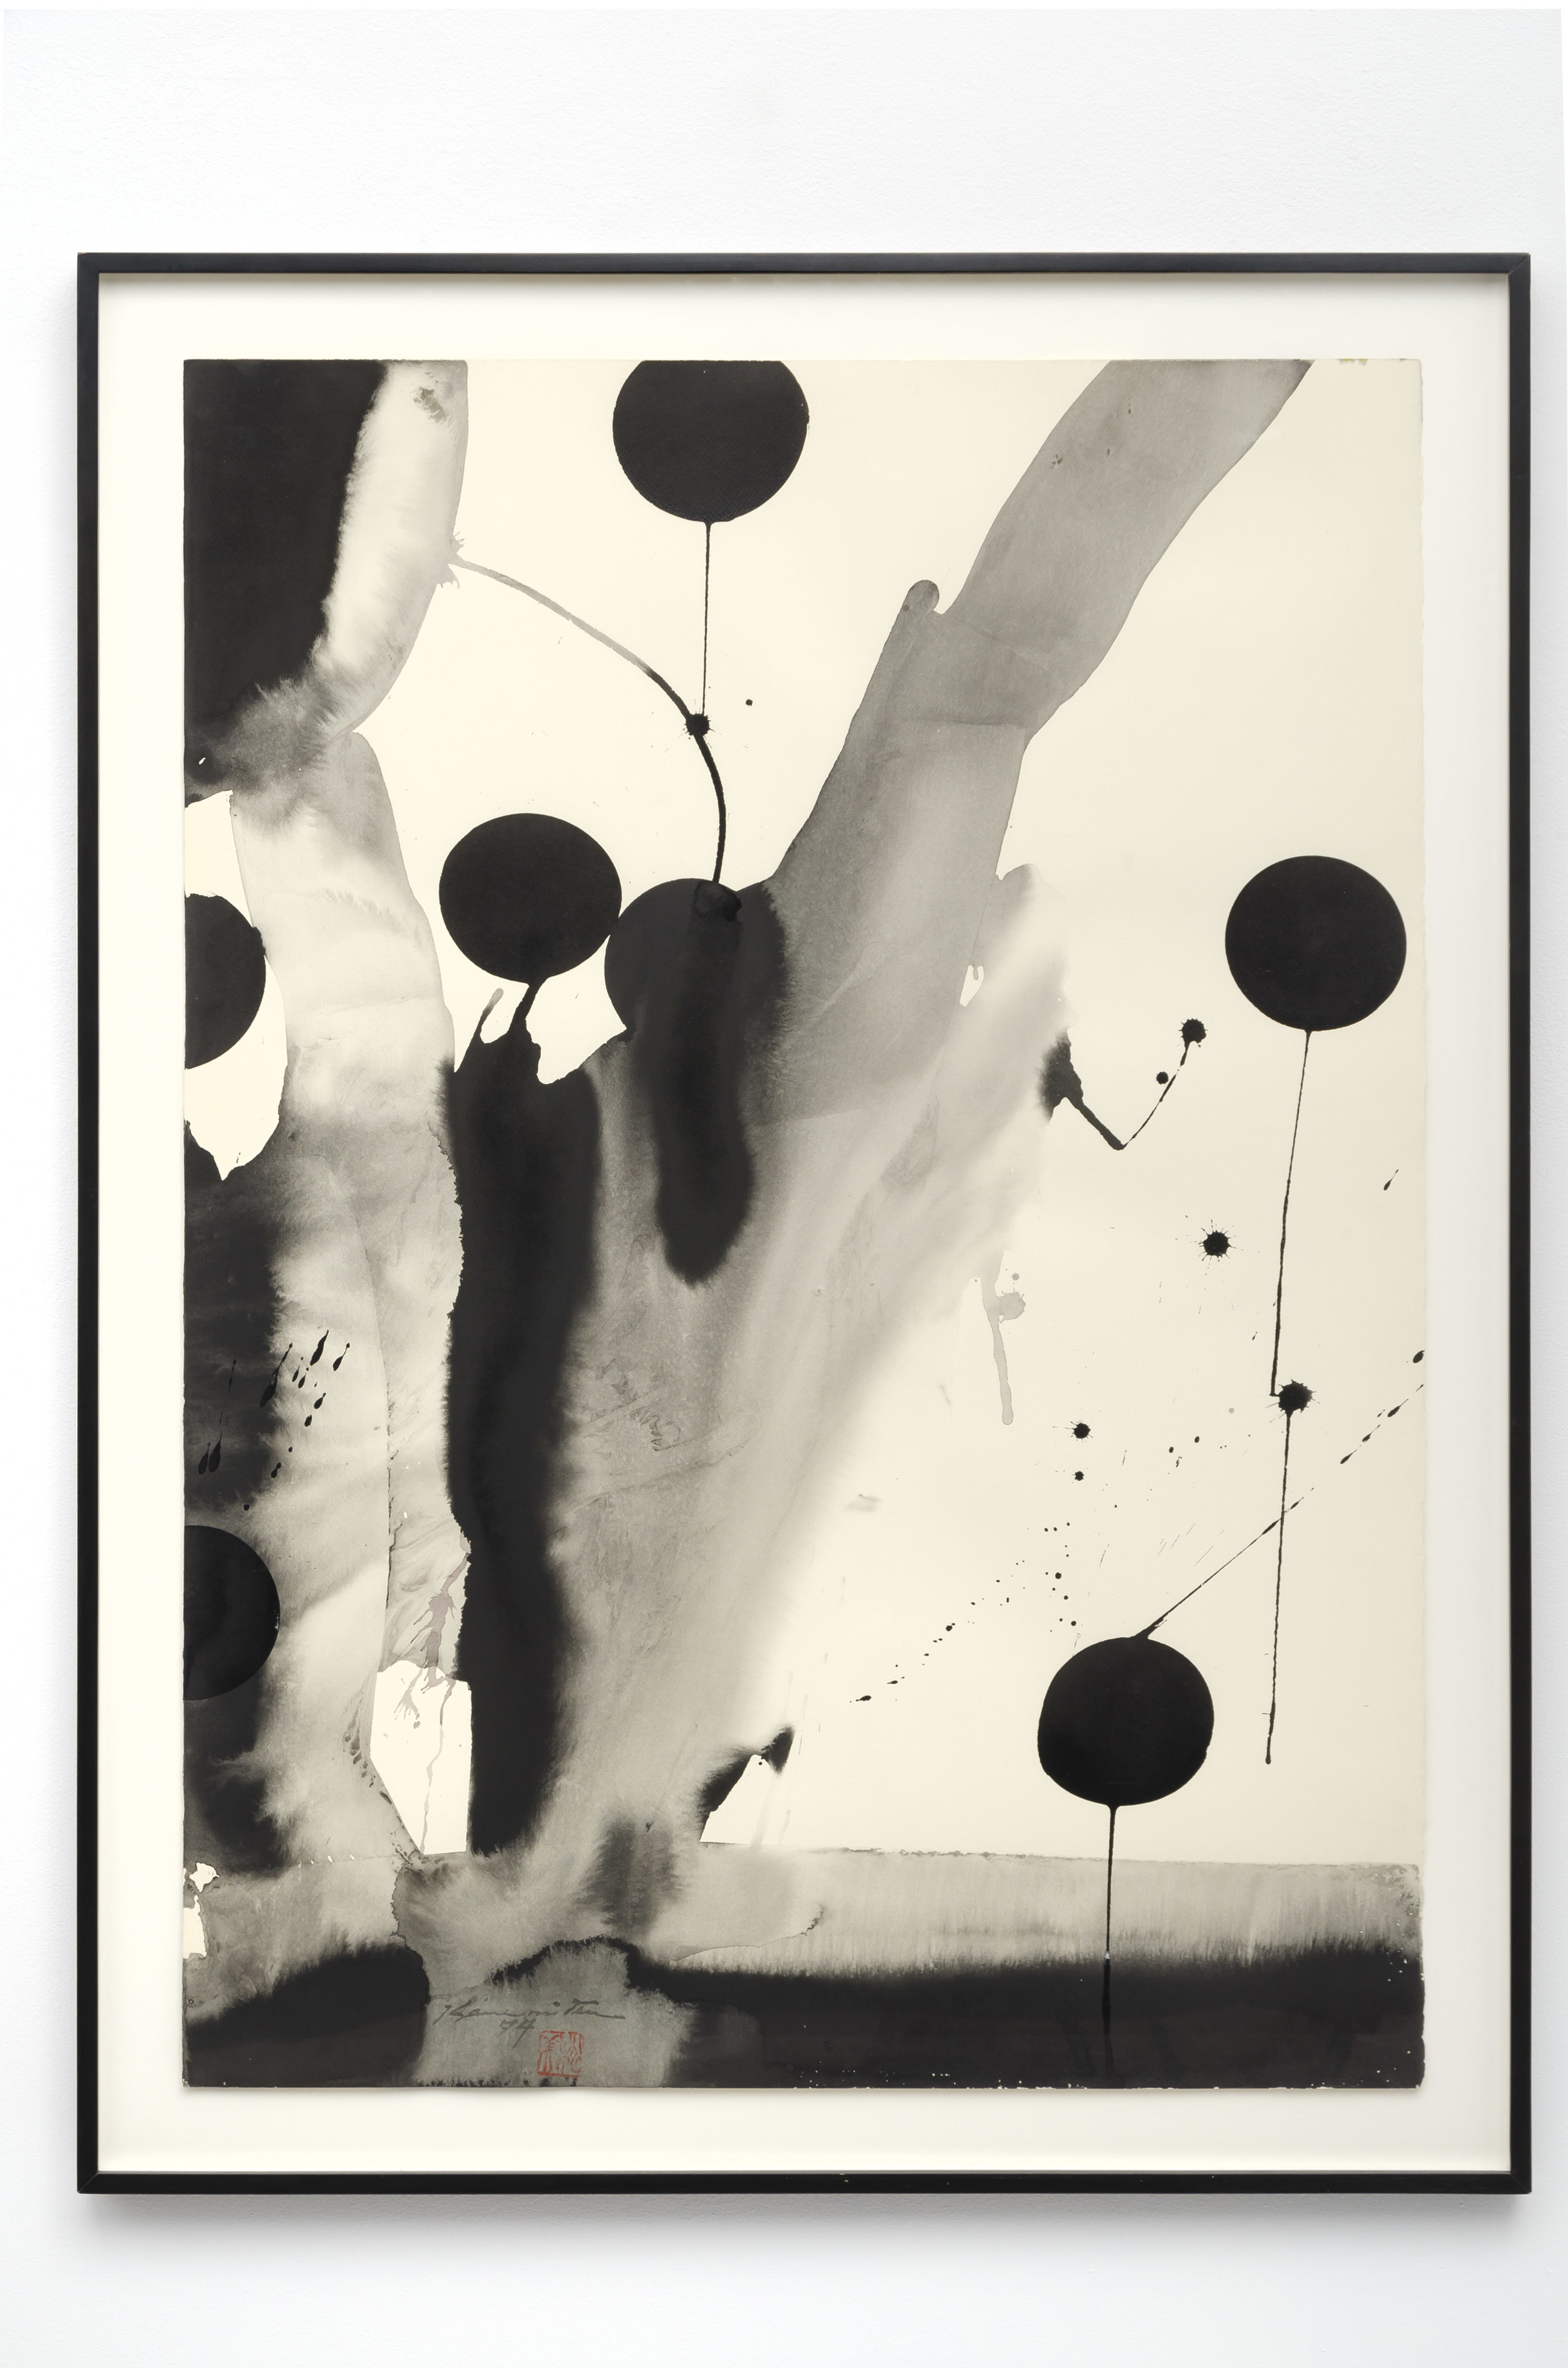 Untitled #7450 , 1974 sumi ink on paper 44.5 x 32.75 inches; 113 x 83.2 centimeters